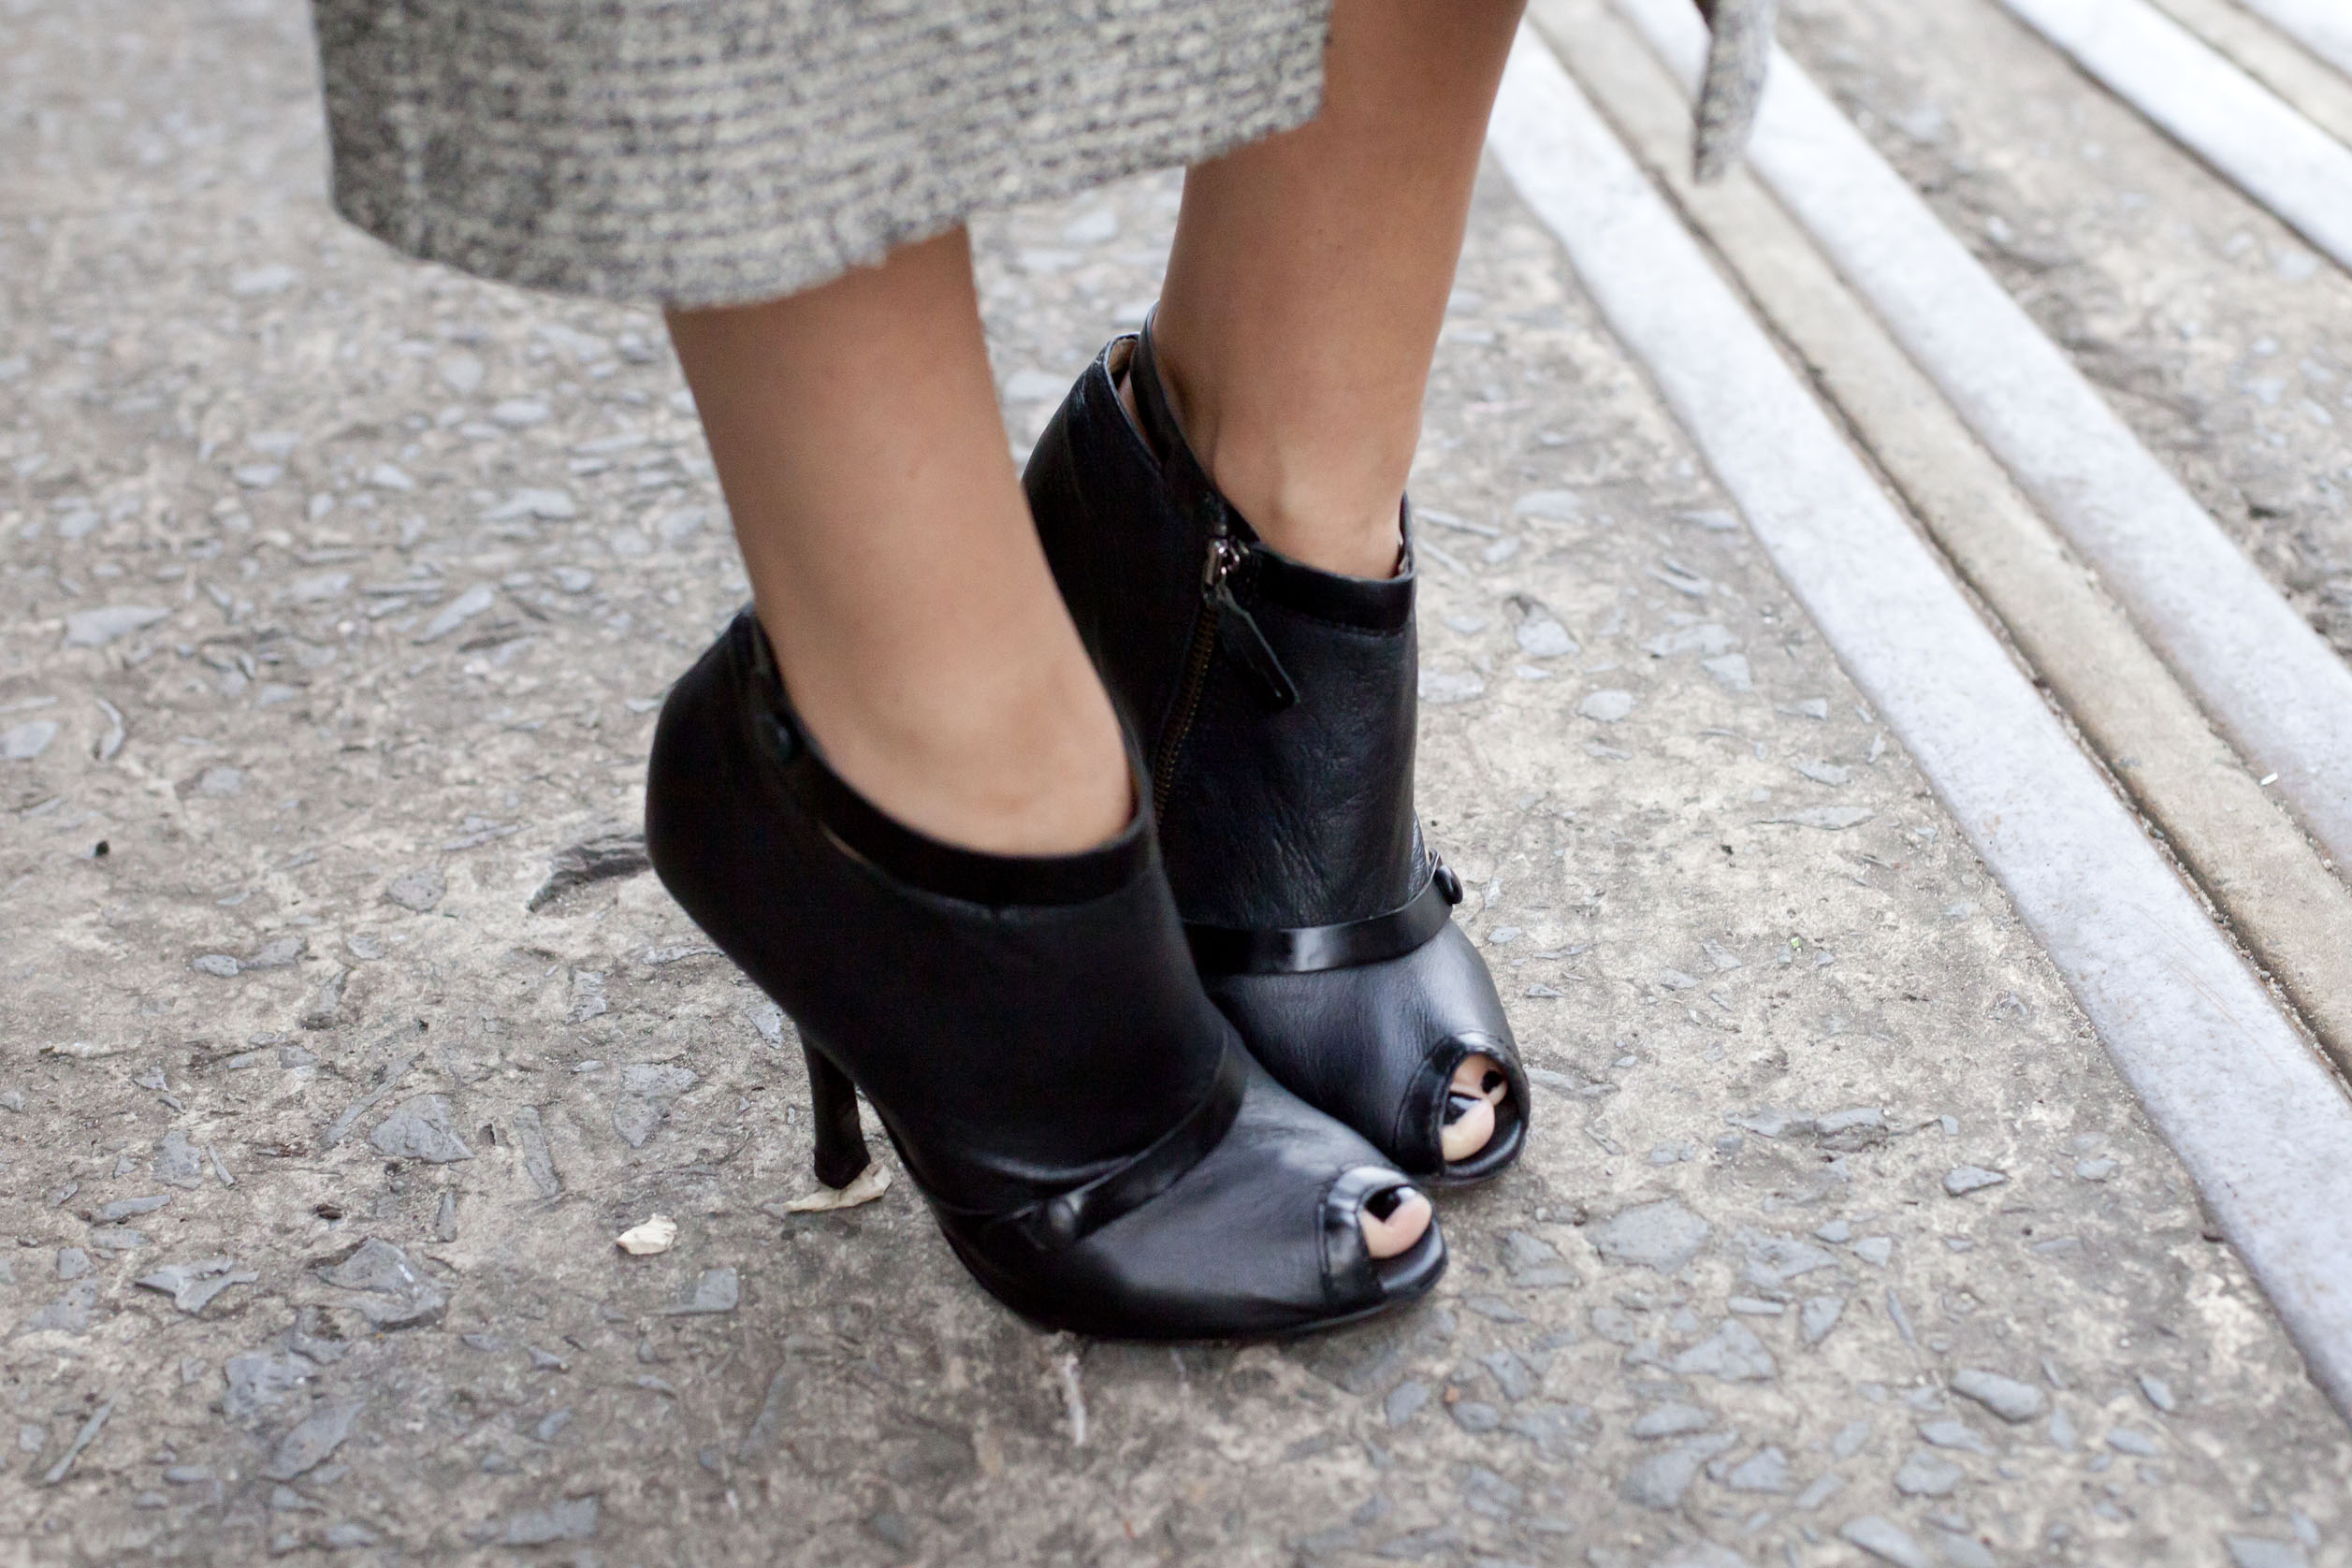 A woman from the shins down wearing black open-toe high heel boots.